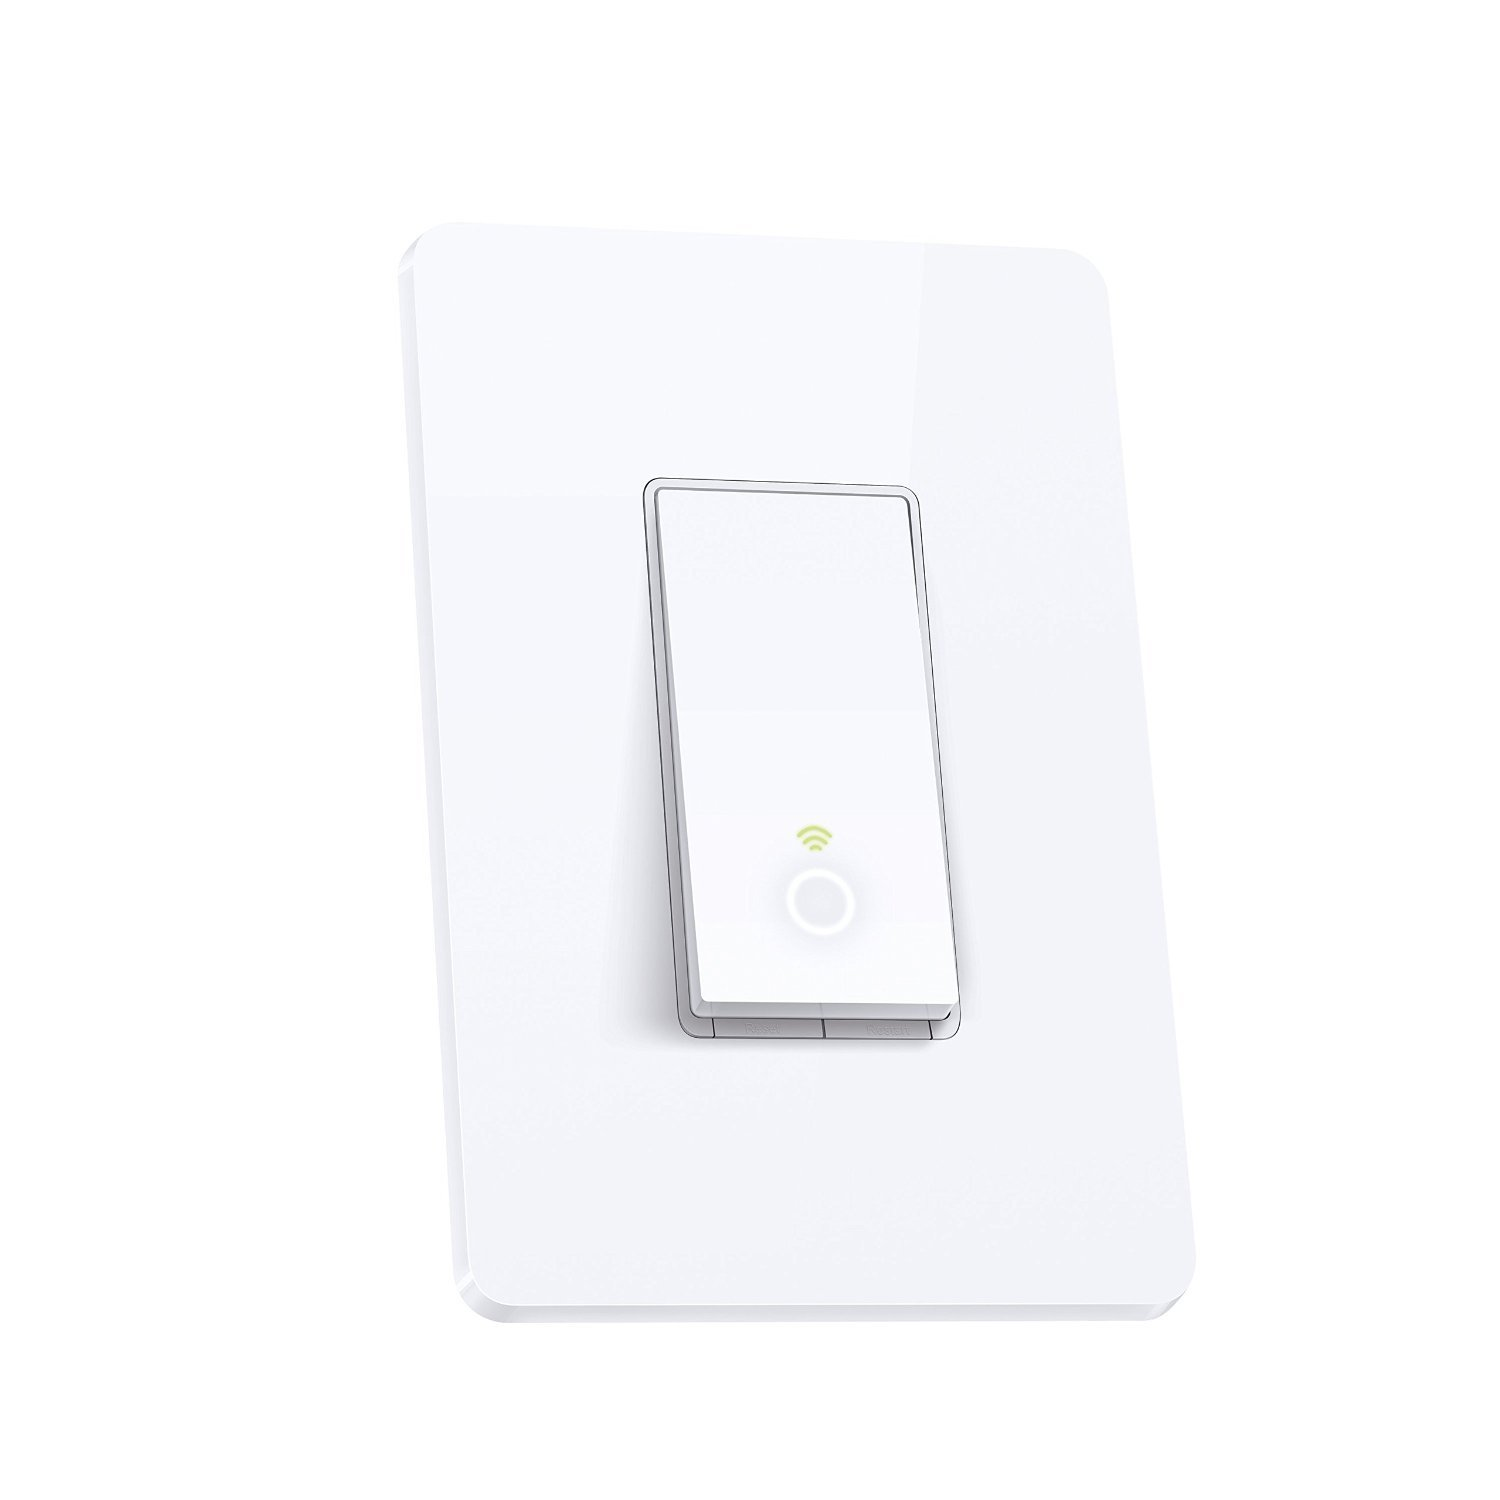 TP-Link Smart Wi-Fi Light Switch, No Hub Required, Single Pole, Control Your Fixtures From Anywhere (HS200), Works with Amazon Alexa Kit (2-Pack) by TP-Link (Image #2)